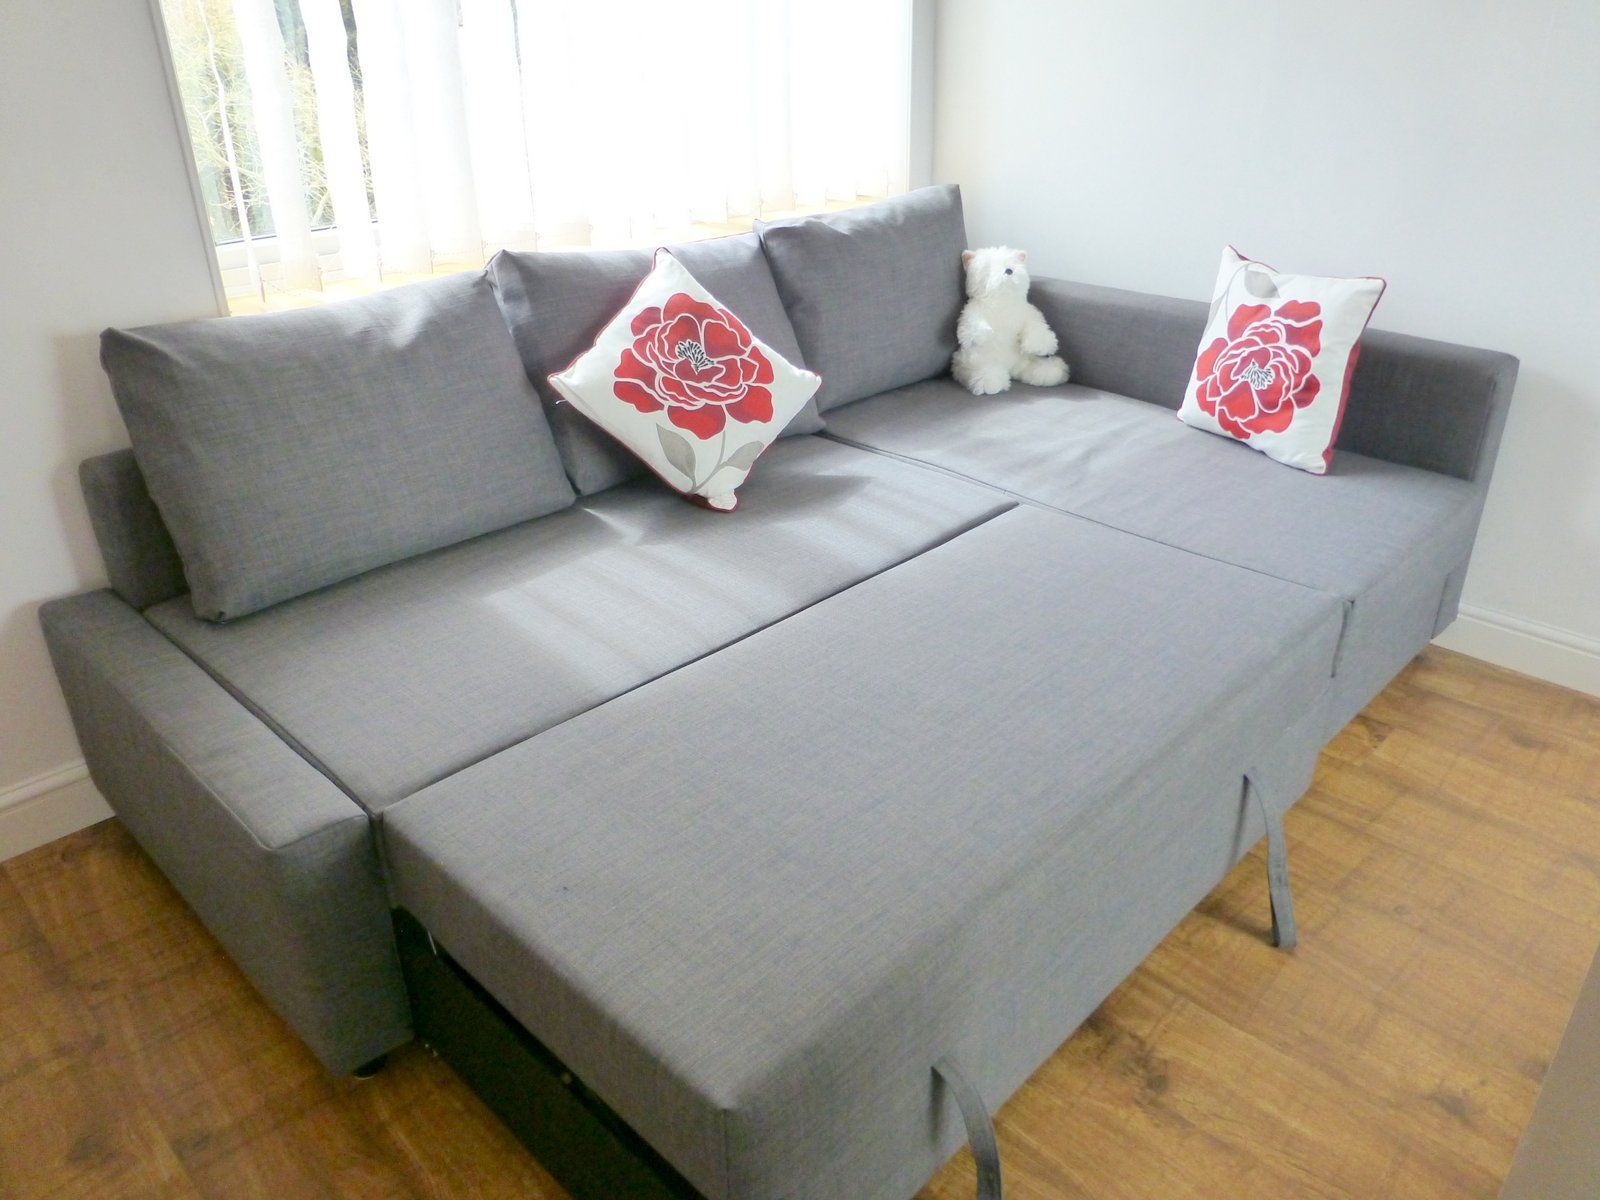 Bettsofa Ikea Friheten Nice Fresh Ikea Friheten Sofa Bed Review 66 About Remodel Home